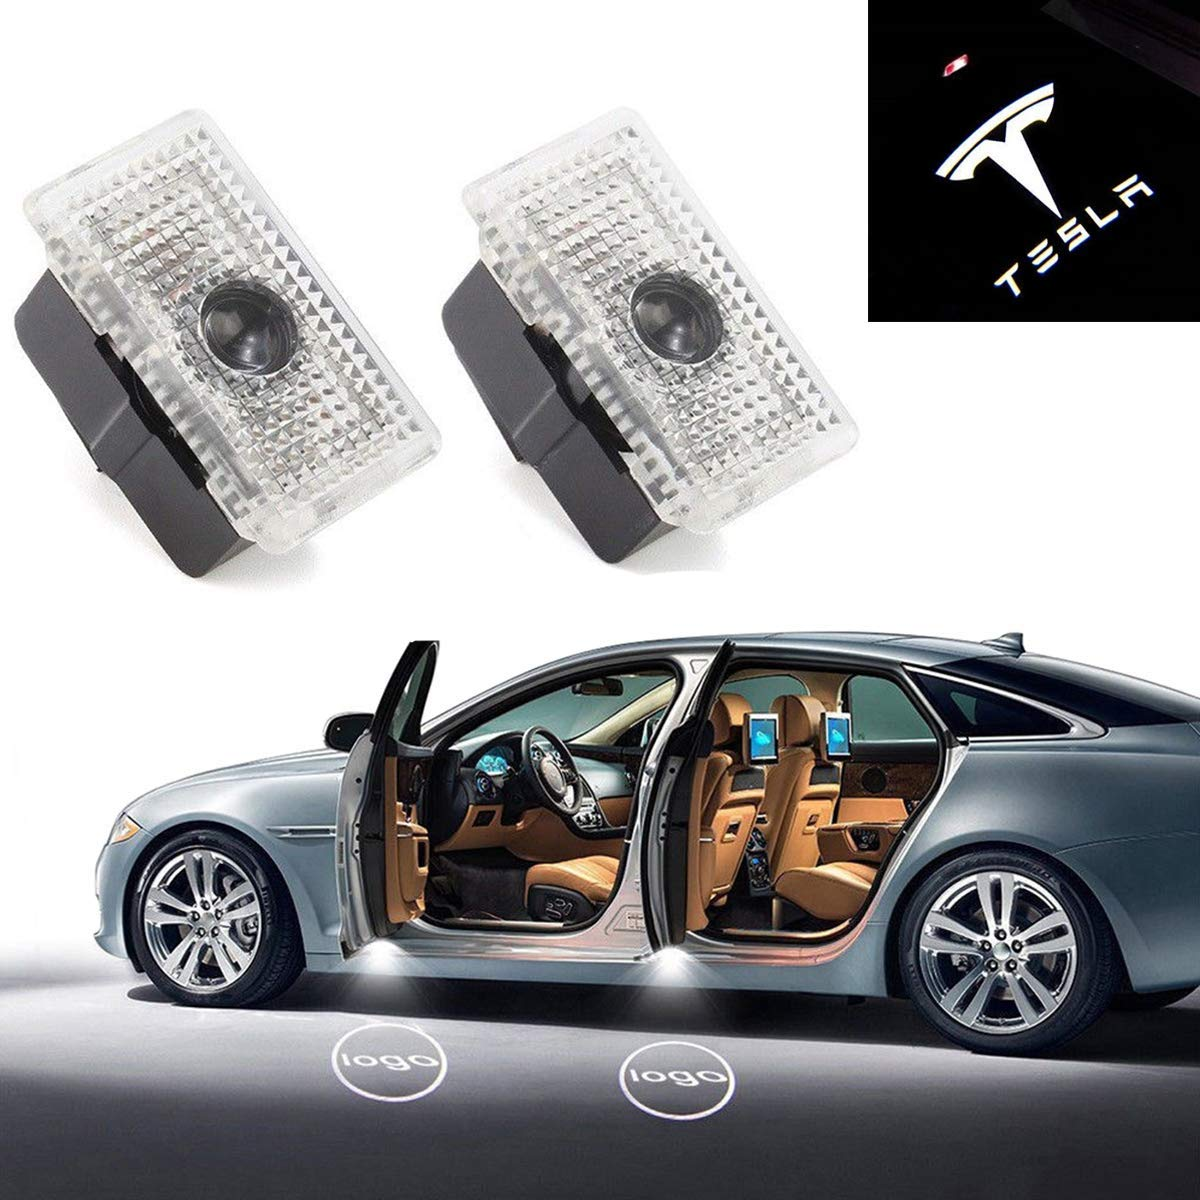 Eastfly Car Door LED Logo for Nissan Projector Ghost Shadow Altima Amadar Titan Pathfinder Quest Maxima LED Courtesy Step Lights Ground Lamp Kit Replacement Entry Welcome Lamp Logo Light